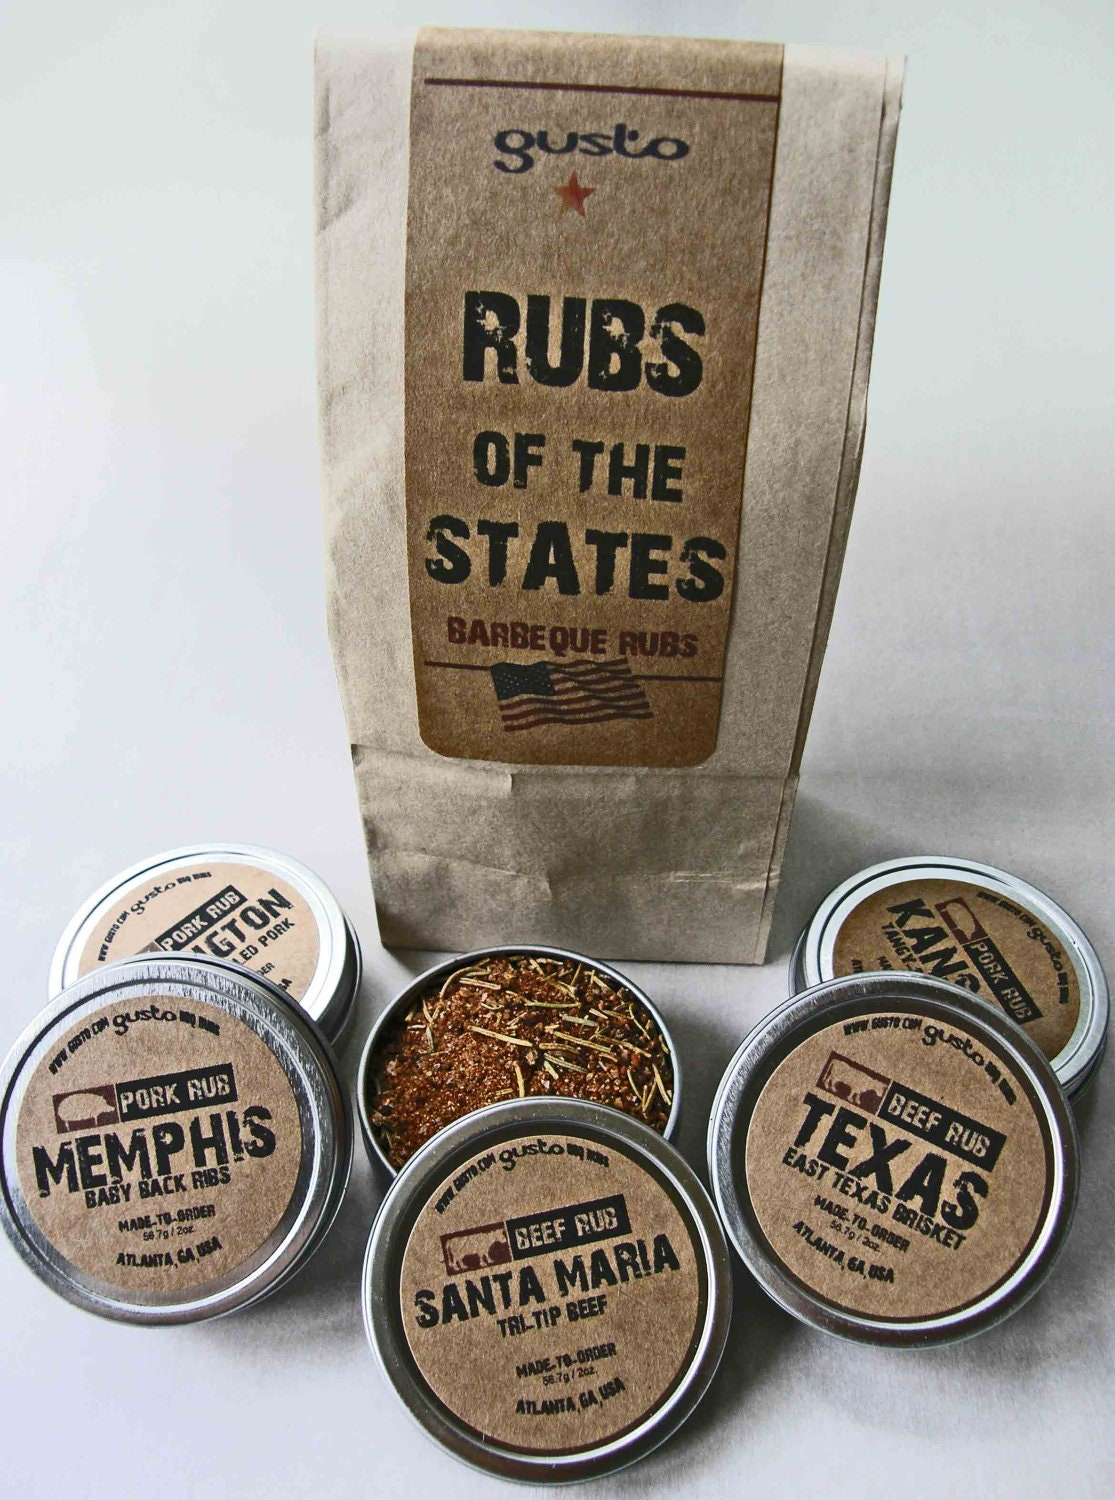 Gusto - Rubs of the States - Barbeque Rub Gift Set - BBQ Grilling